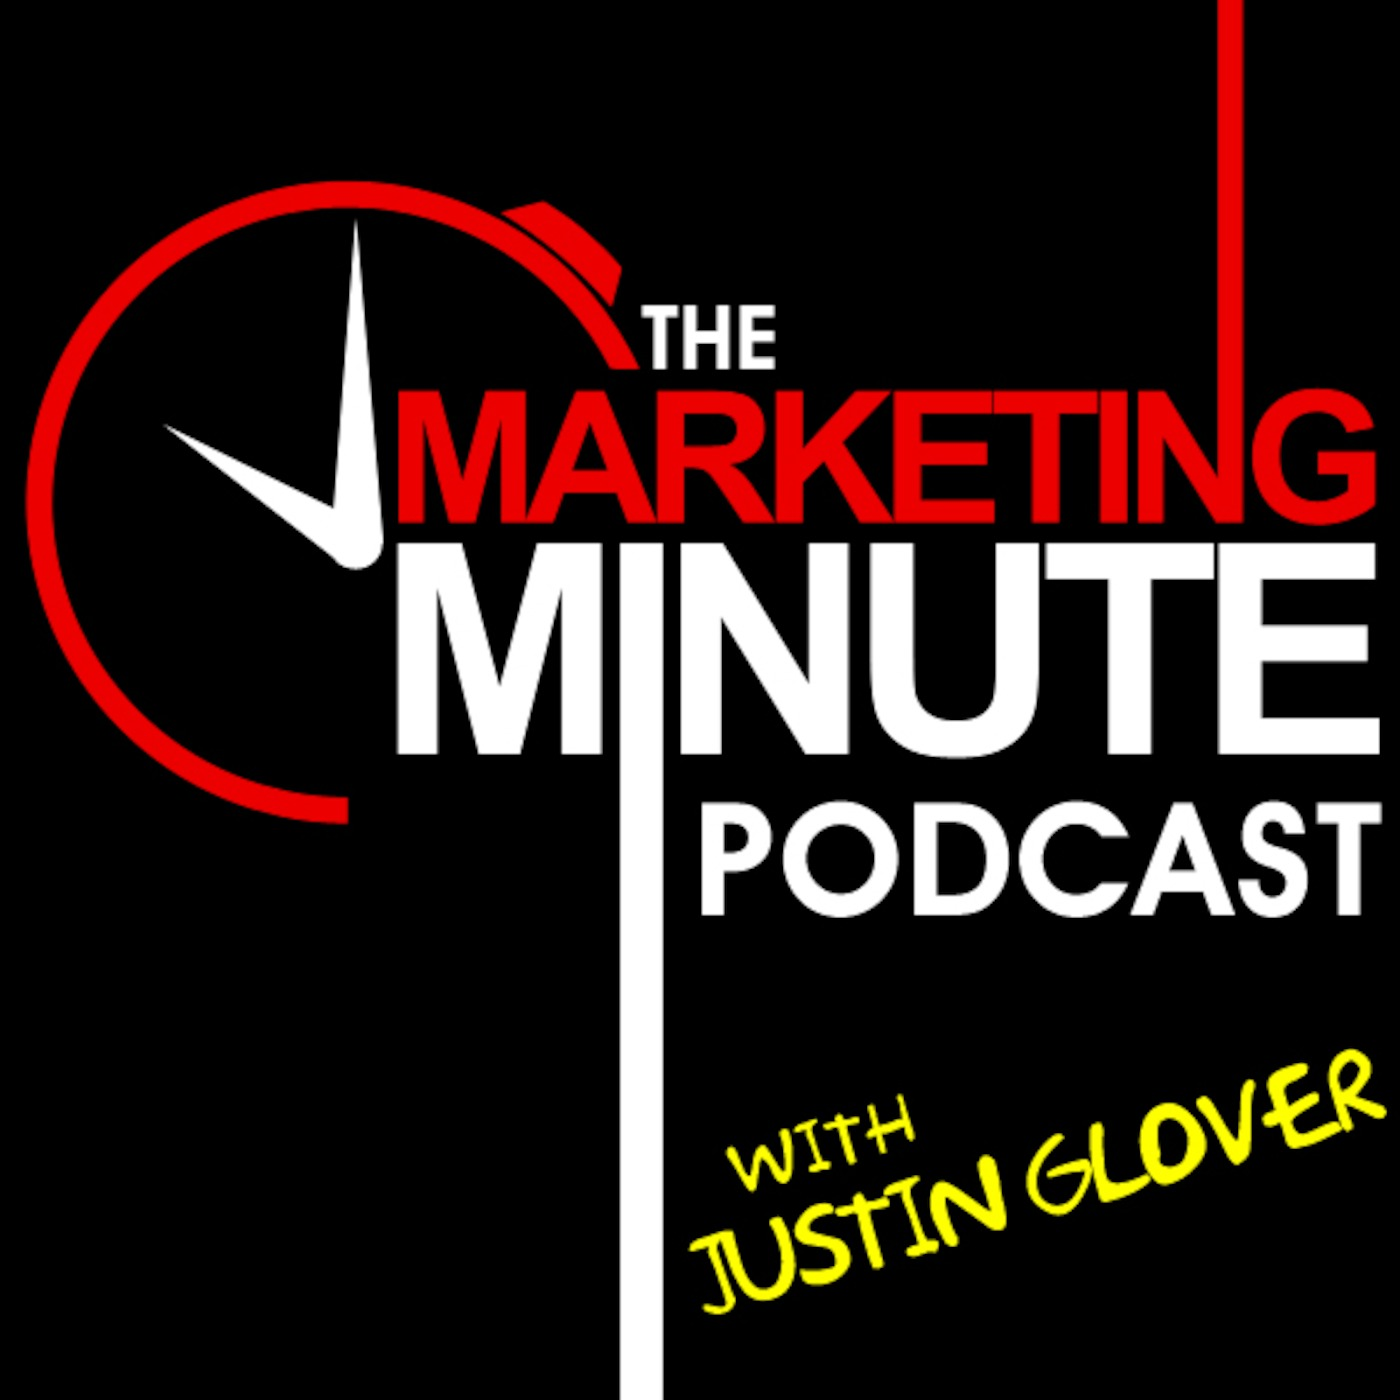 The Marketing Minute Podcast with Justin Glover